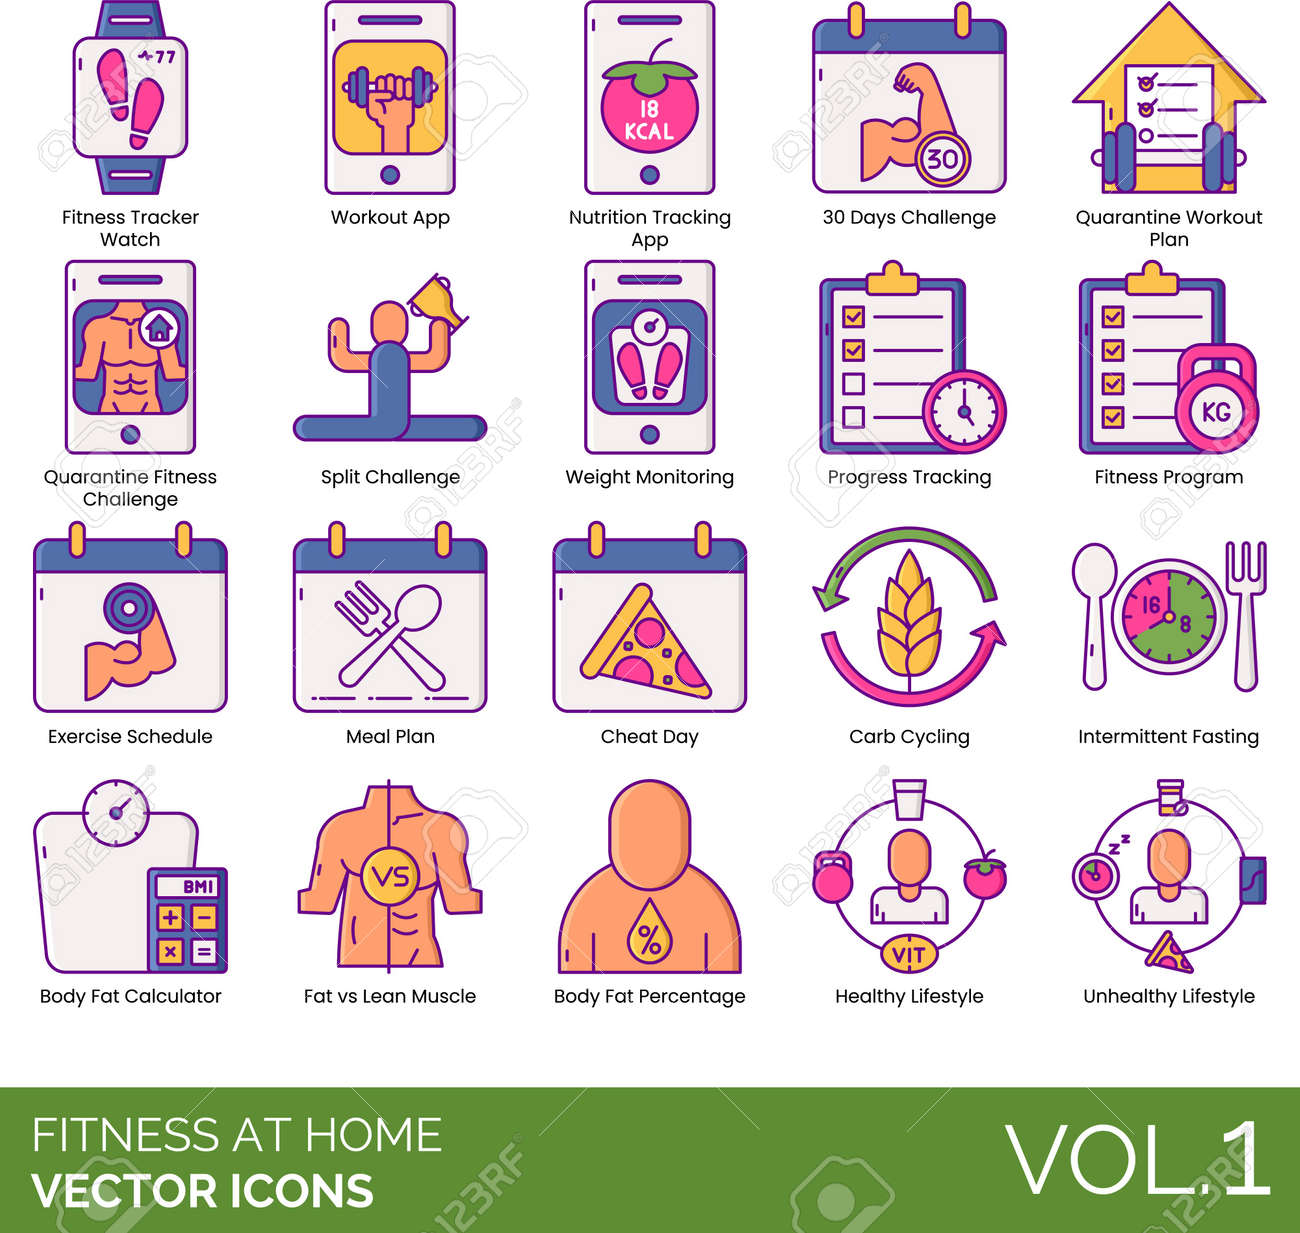 Line icons of fitness at home and healthy lifestyle, workout app, diet program, body fat calculator - 155046410